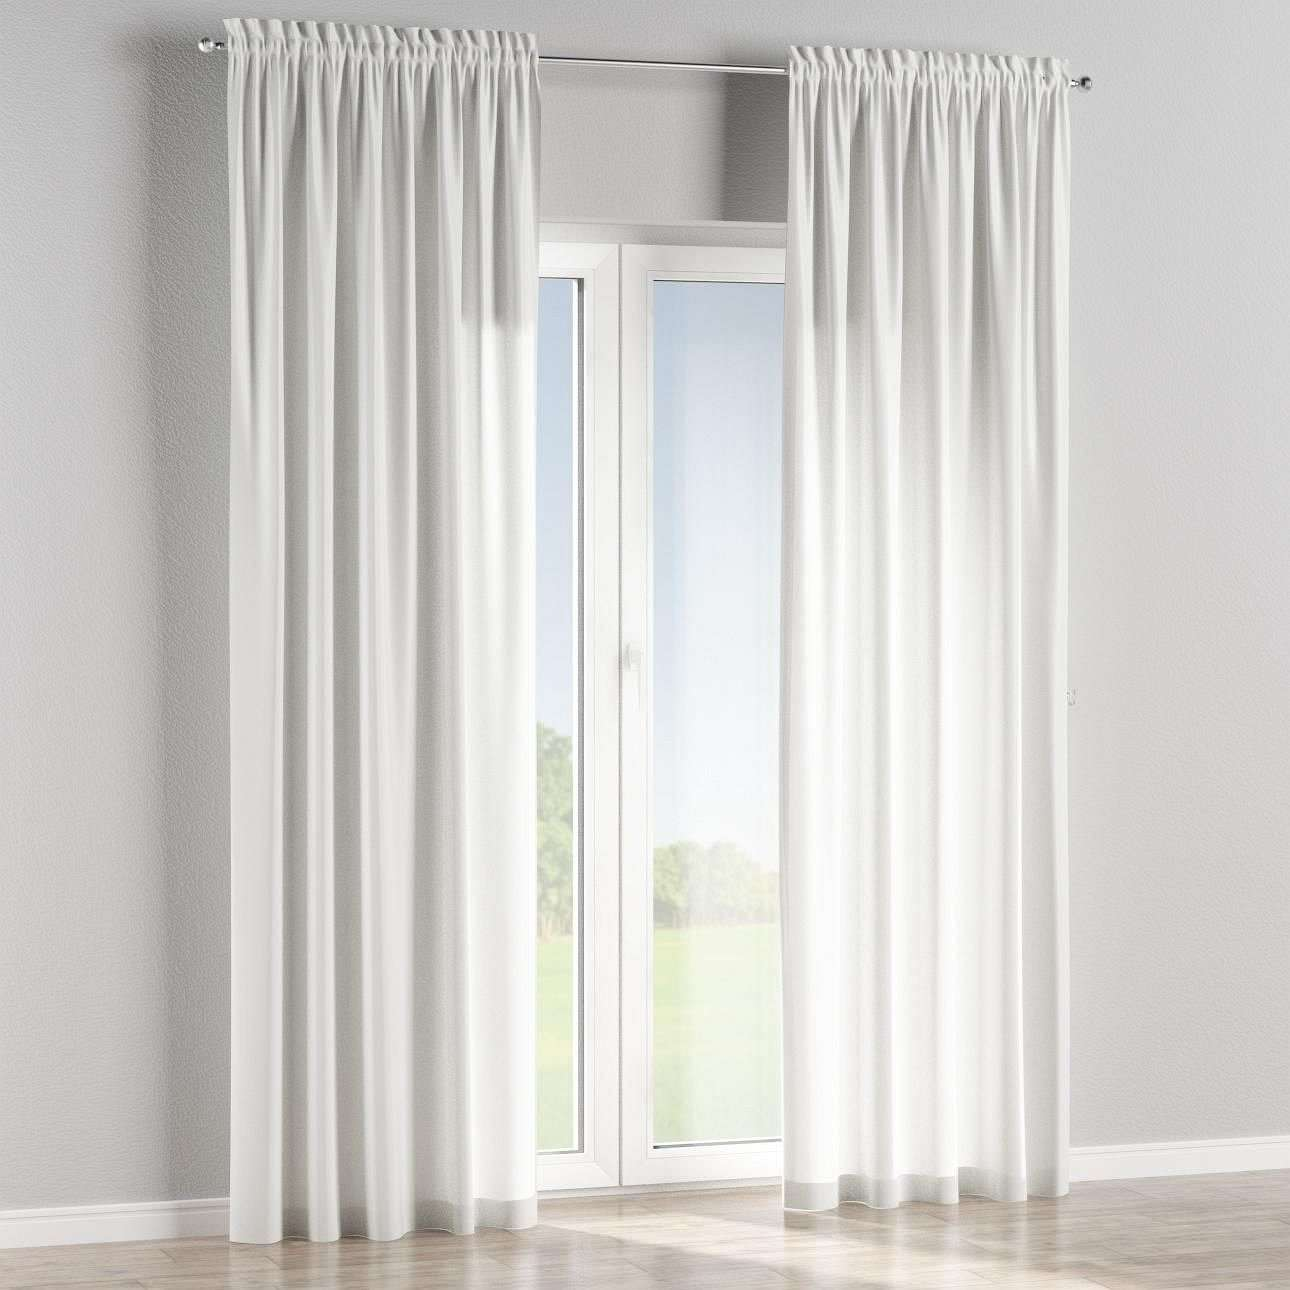 Slot and frill curtains in collection Ashley, fabric: 137-66